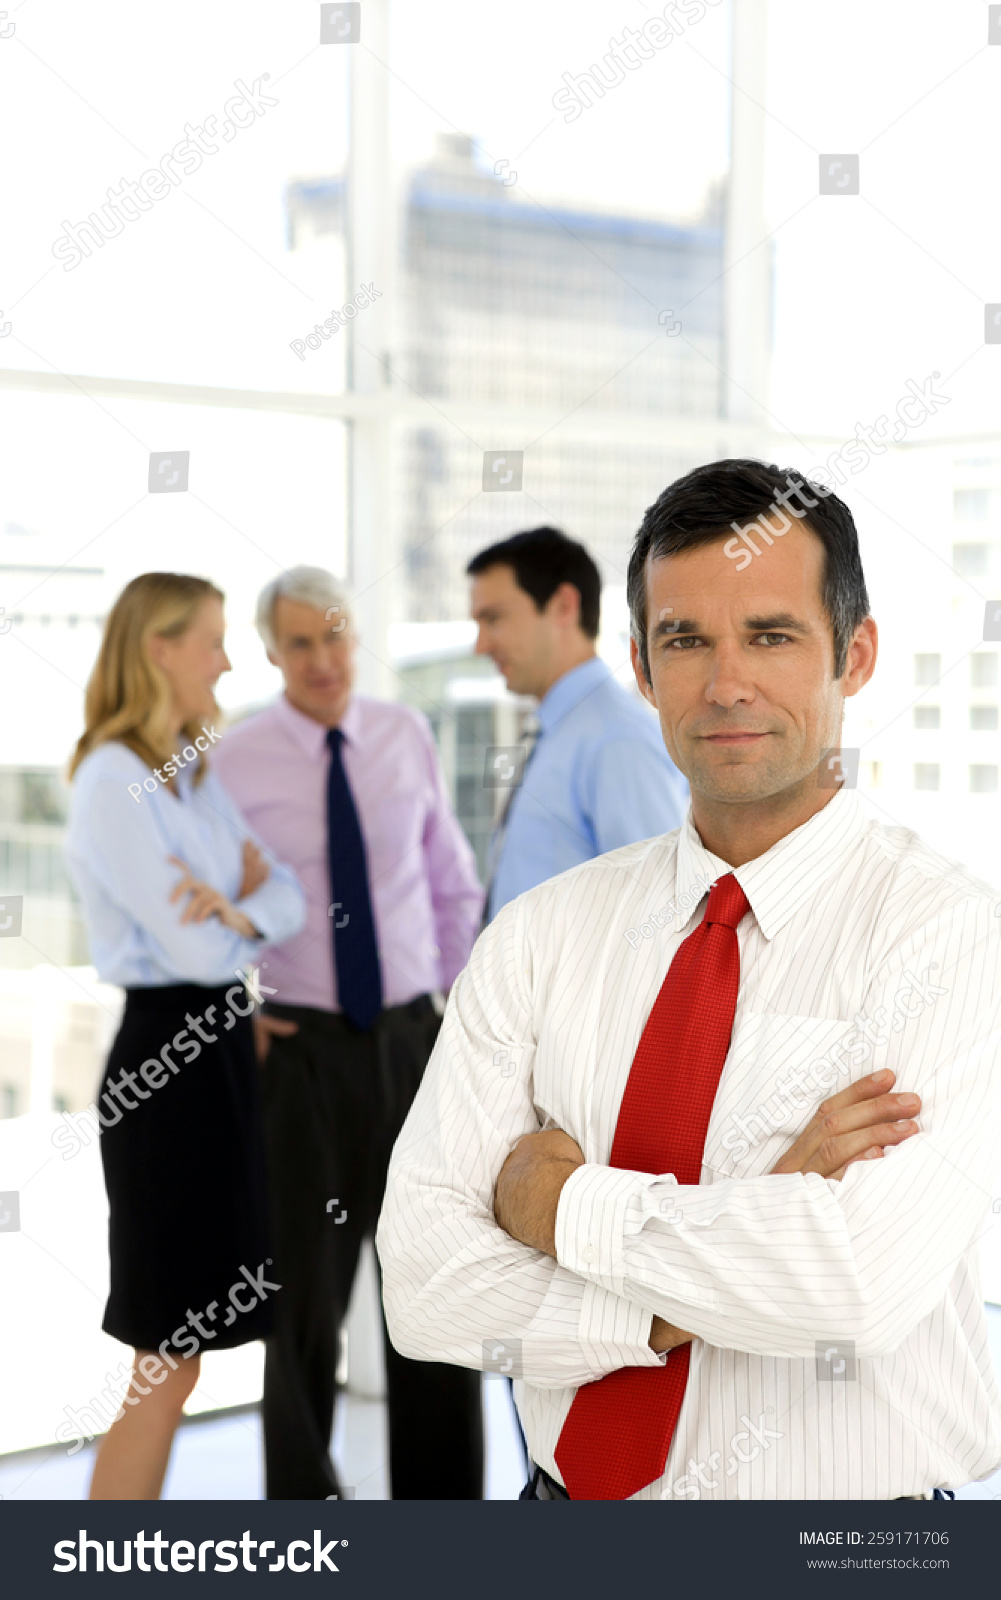 06f4a59339e0 Businessman with arms crossed standing on foreground while other business  people talk in the background